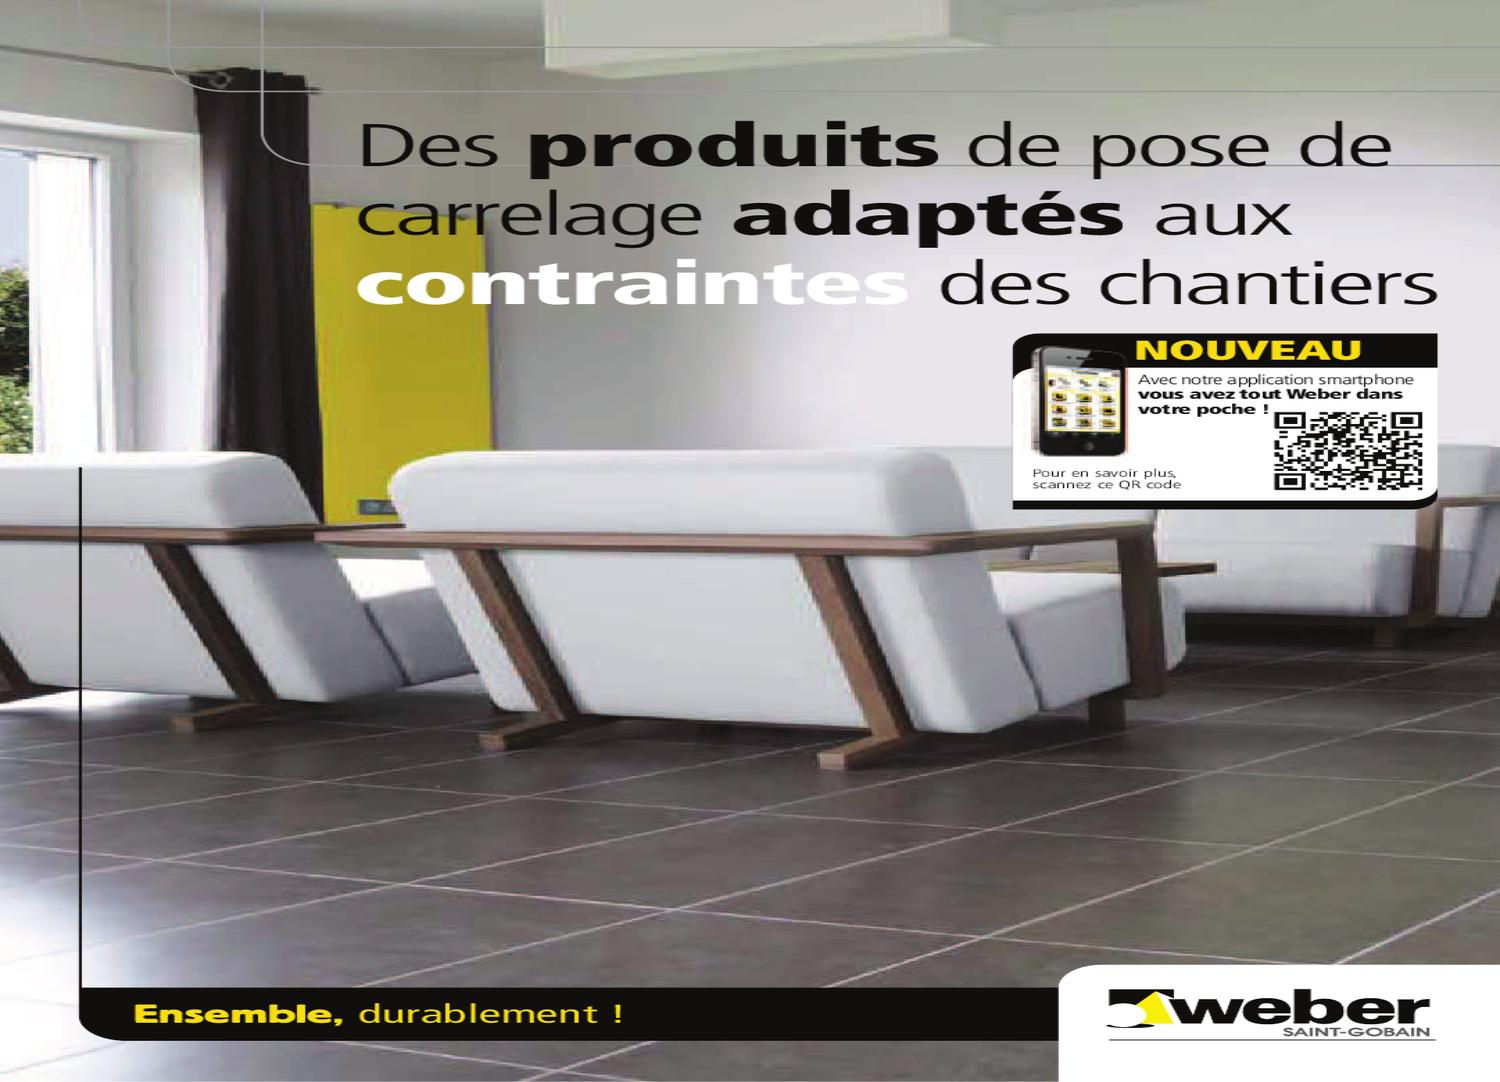 Nettoyant Facade Weber Fr Chapitre Pdc Guide2012 By Weber Issuu